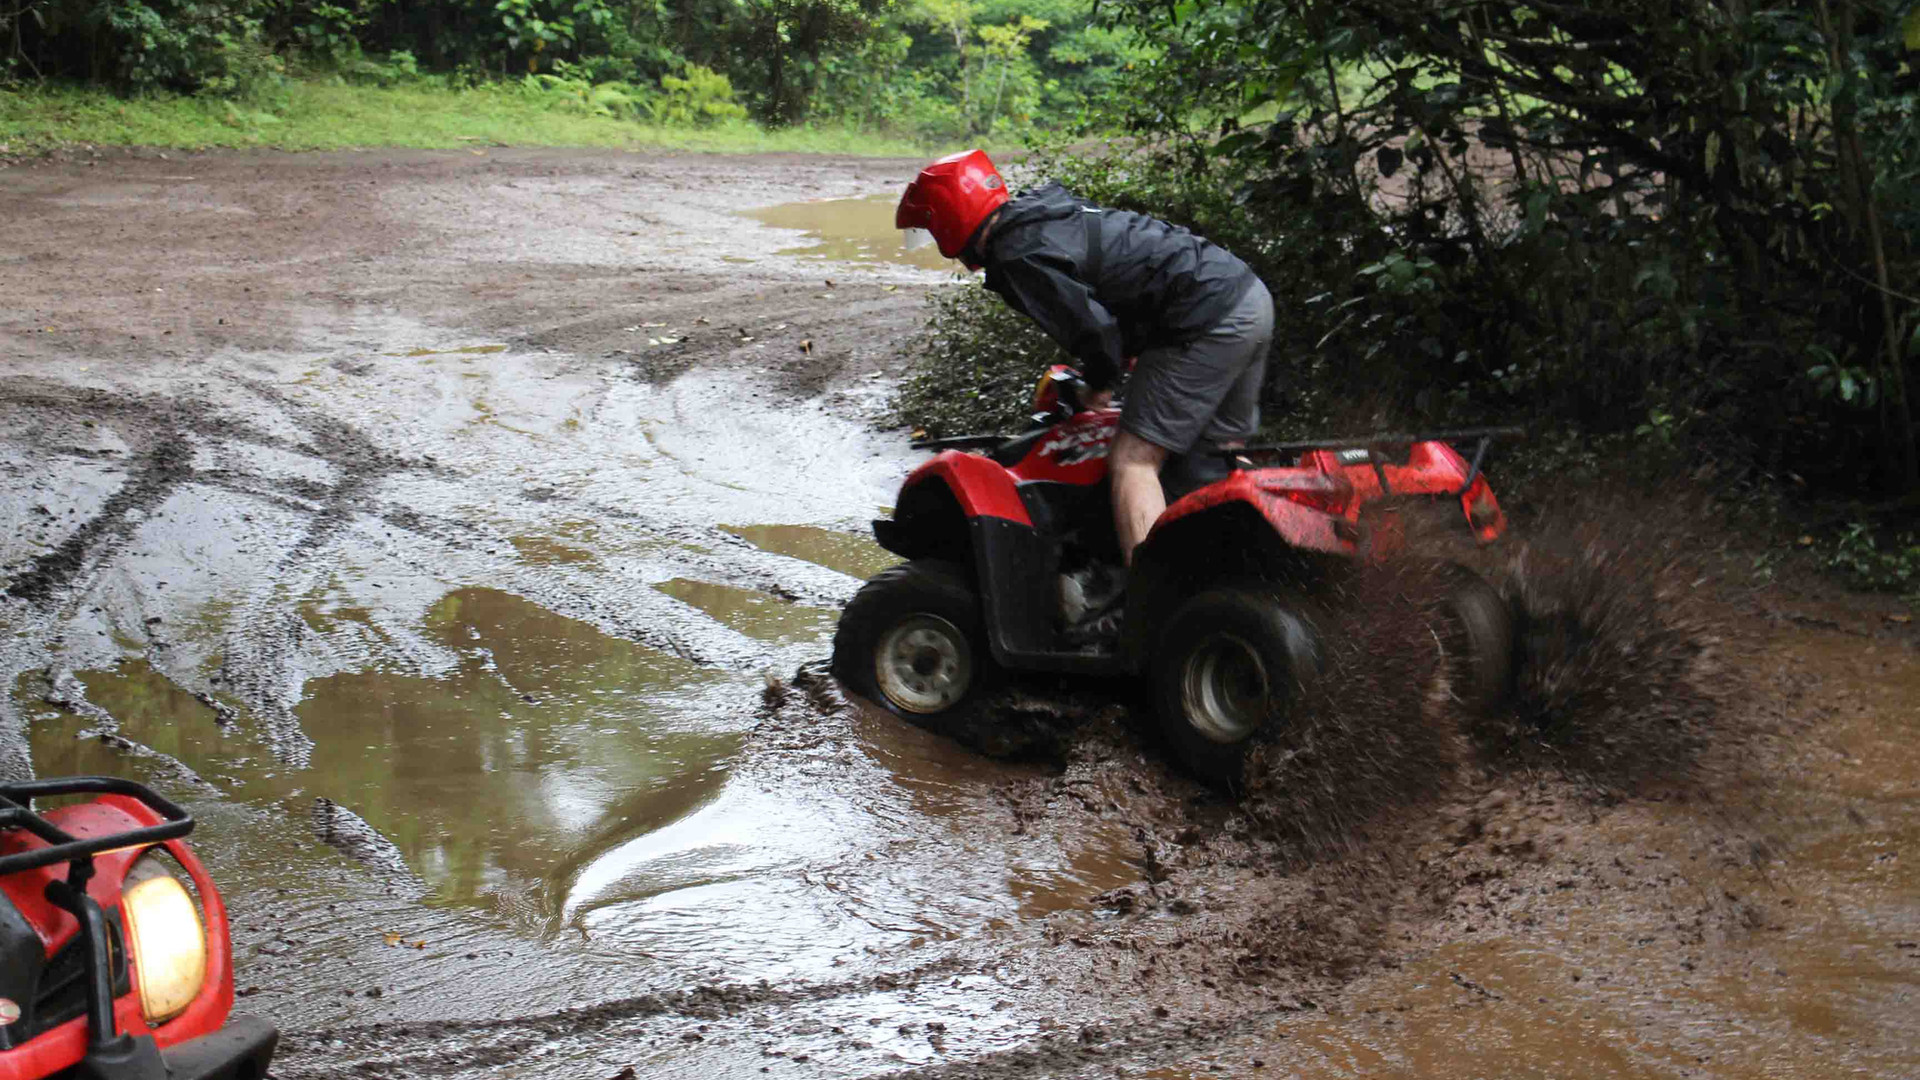 Monteverde Costa Rica ATV adventure tour group driving through mud making sliding donuts